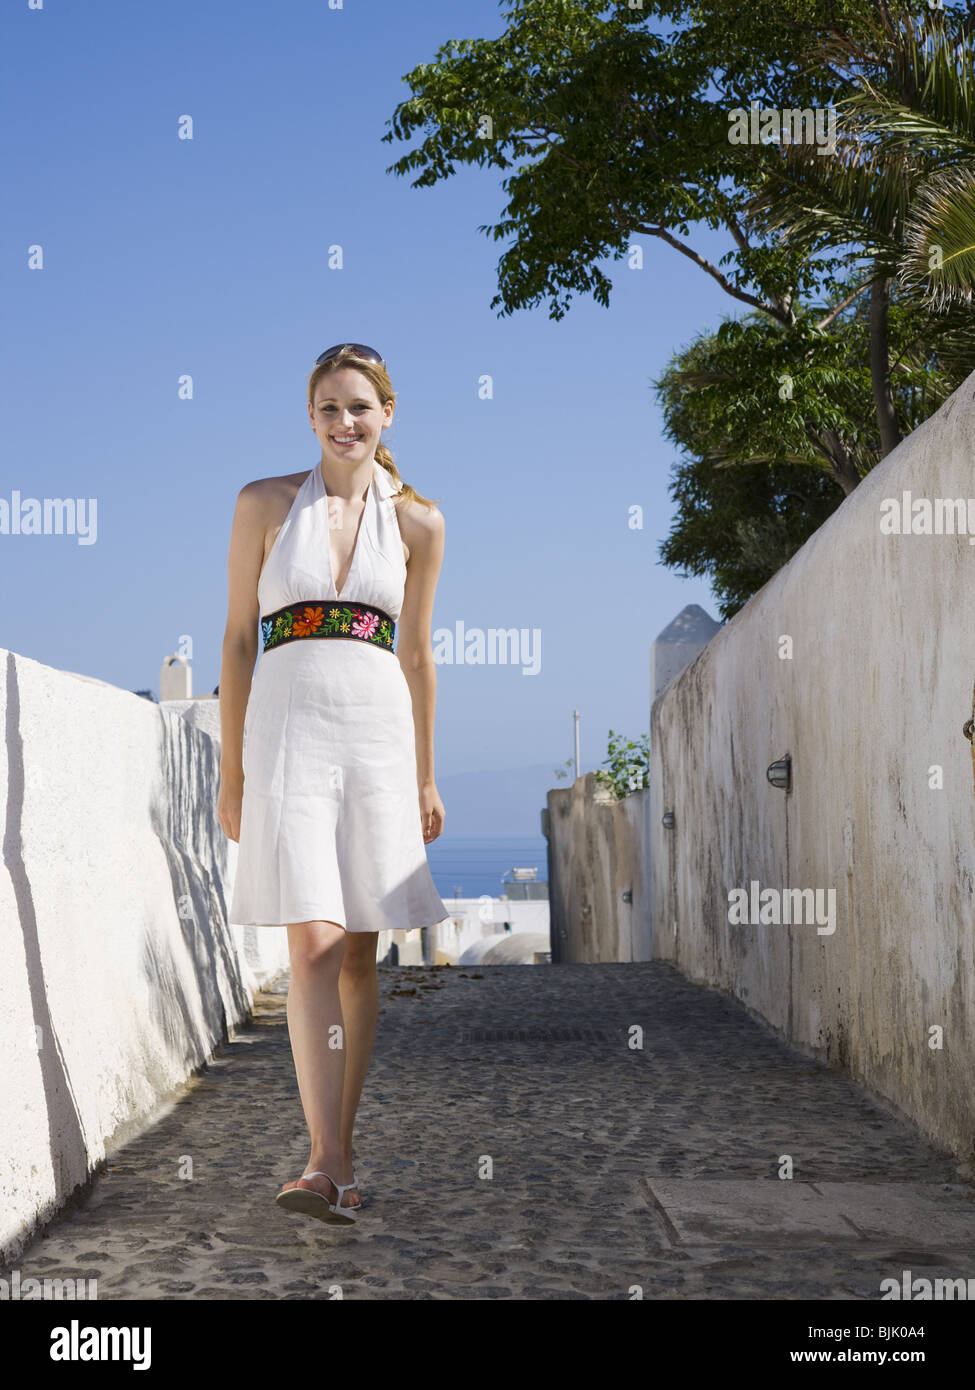 Woman leaning on wall et smiling outdoors Photo Stock